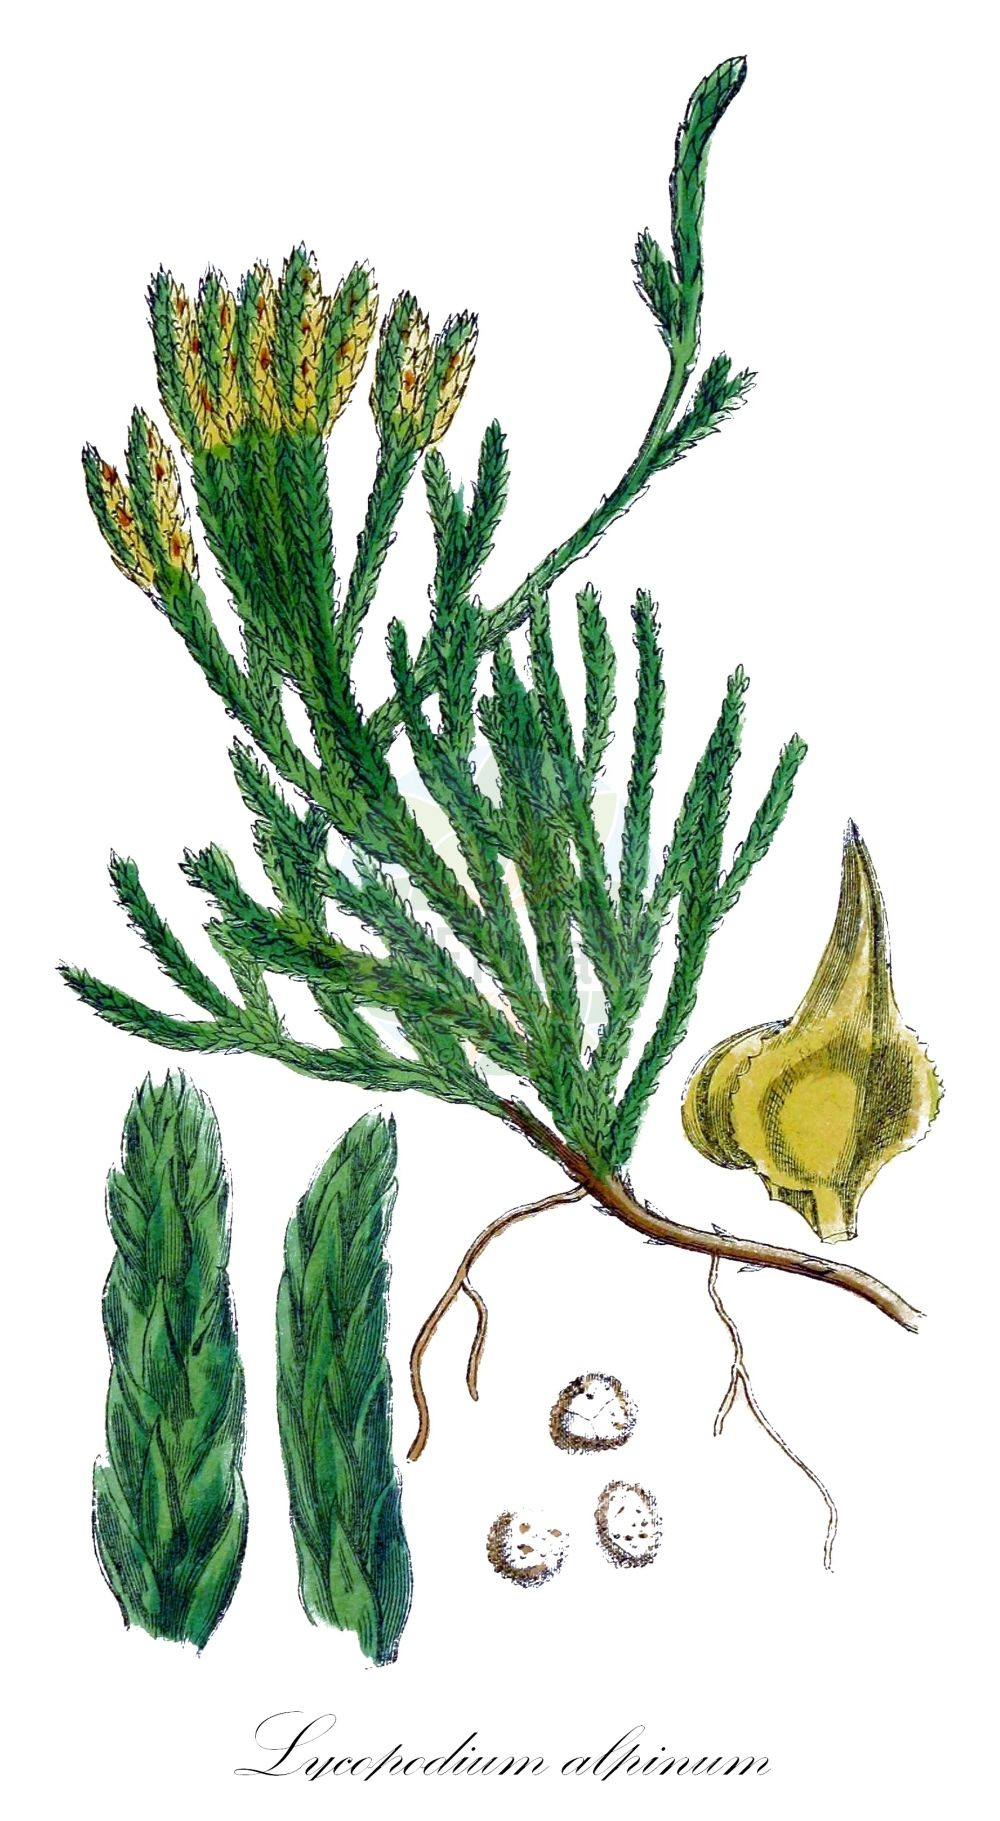 Historische Abbildung von Lycopodium alpinum (Alpen-Flachbaerlapp - Alpine Clubmoss). Das Bild zeigt Blatt, Bluete, Frucht und Same. ---- Historical Drawing of Lycopodium alpinum (Alpen-Flachbaerlapp - Alpine Clubmoss).The image is showing leaf, flower, fruit and seed.(Lycopodium alpinum,Alpen-Flachbaerlapp,Alpine Clubmoss,Diphasiastrum alpinum,Diphasiastrum kablikianum,Diphasium alpinum,subsp. kablikianum,Alpen-Baerlapp,Lycopodium,Baerlapp,Clubmoss,Lycopodiaceae,Baerlappgewaechse,Clubmoss family,Blatt,Bluete,Frucht,Same,leaf,flower,fruit,seed,Sowerby (1790-1813))